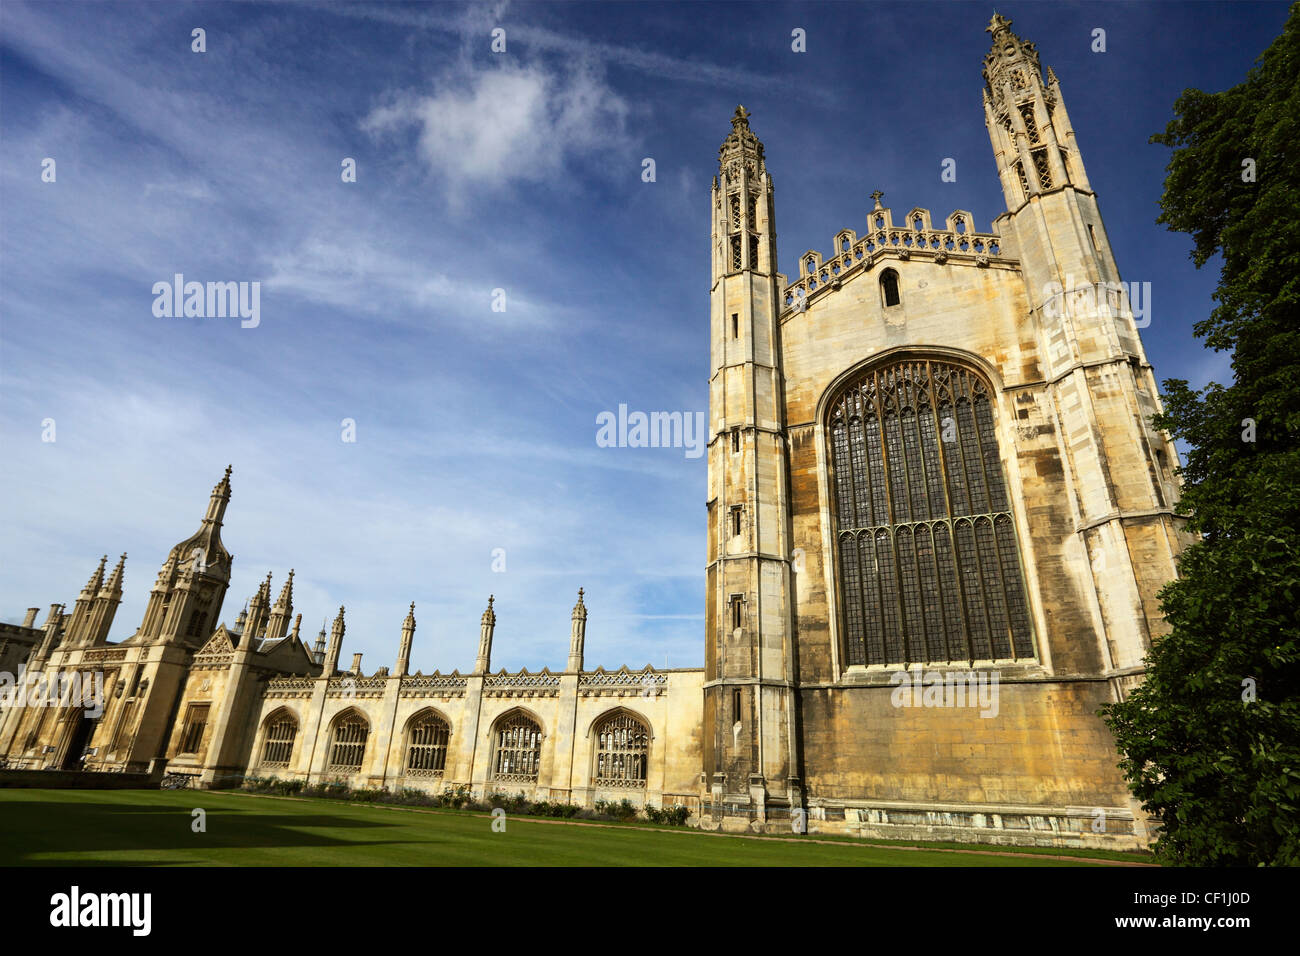 Entrance and Chapel of King's College, Cambridge, one of the finest examples of late Gothic (Perpendicular) - Stock Image